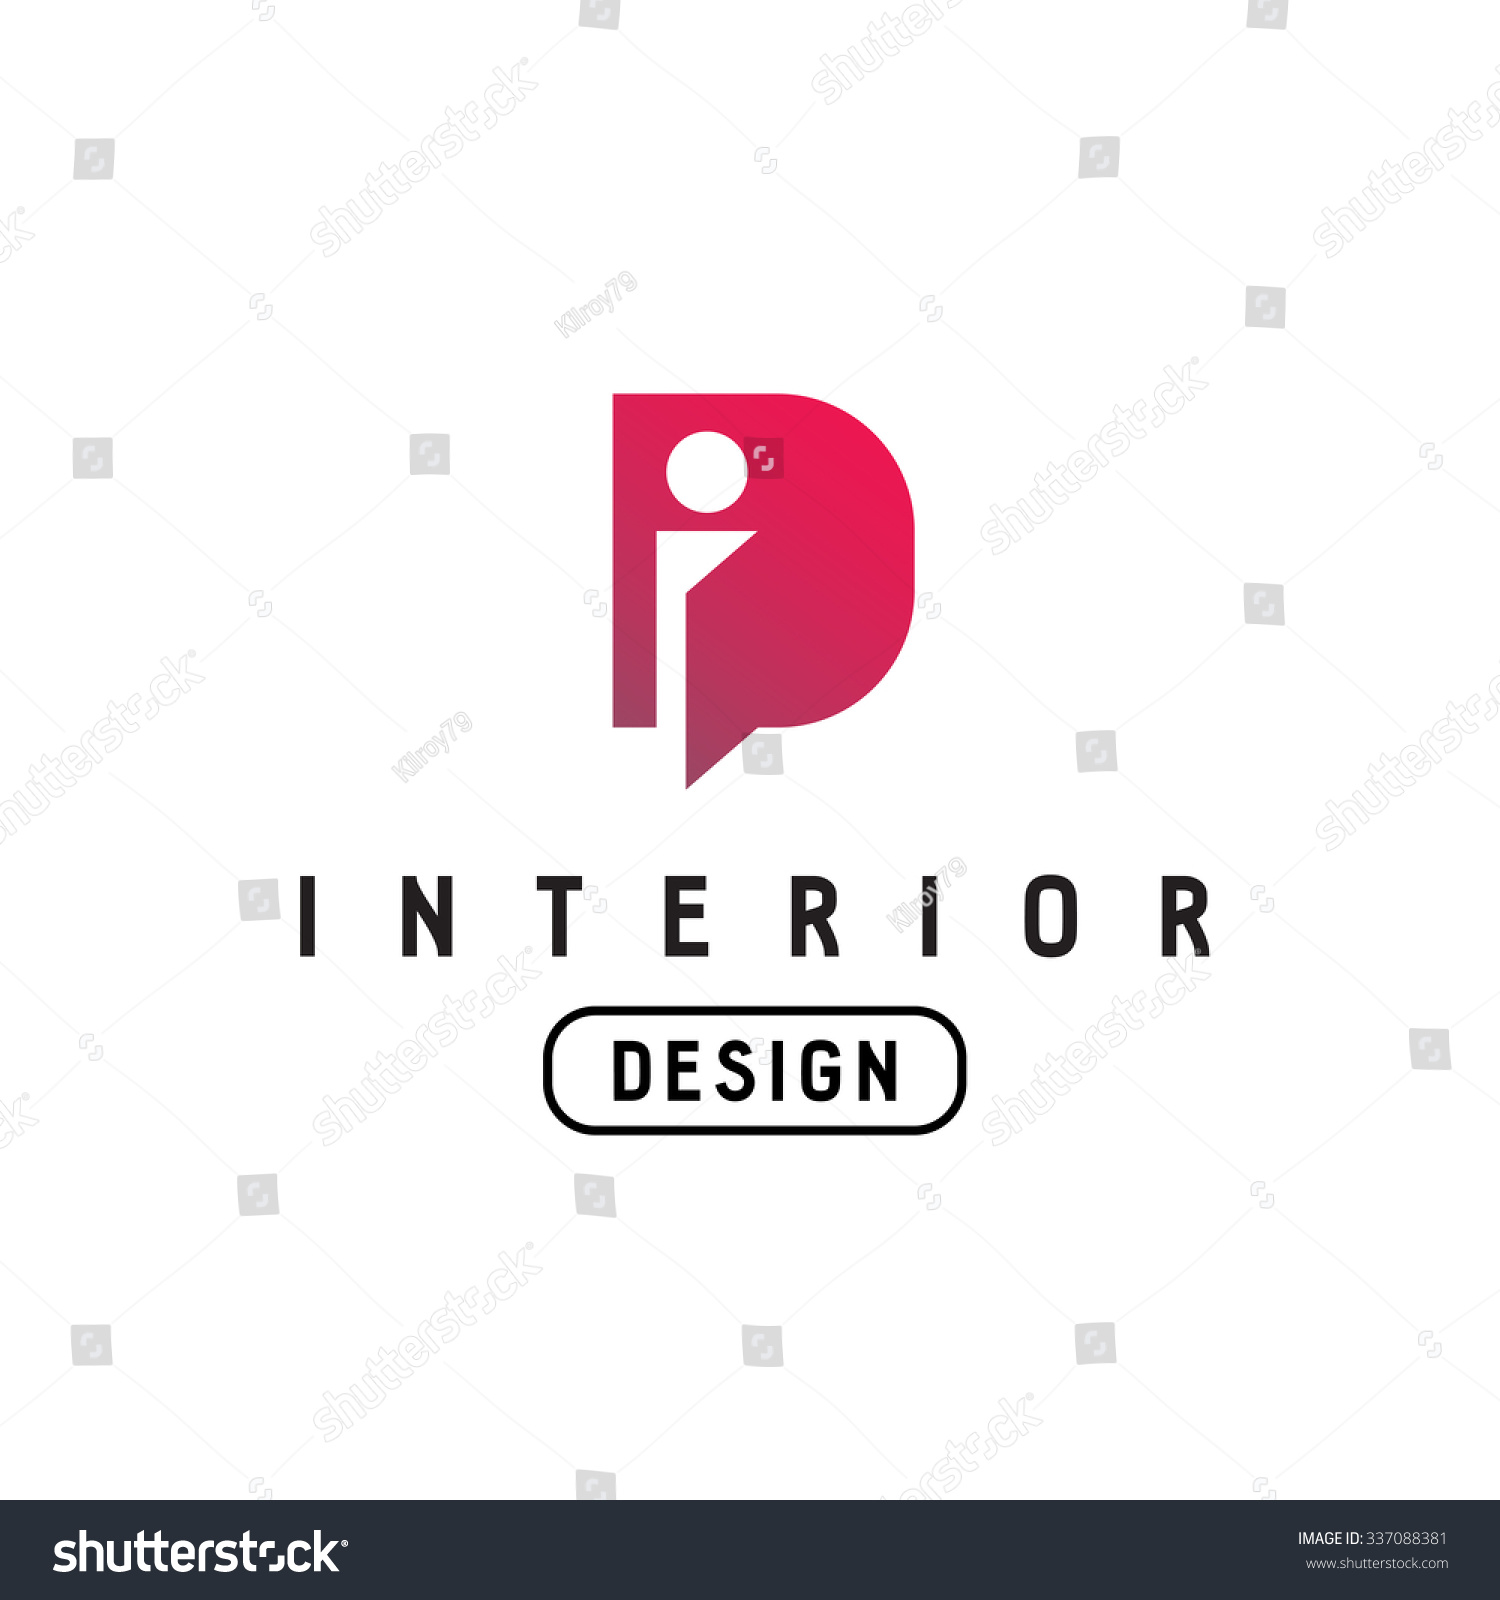 Ligature Logo Design